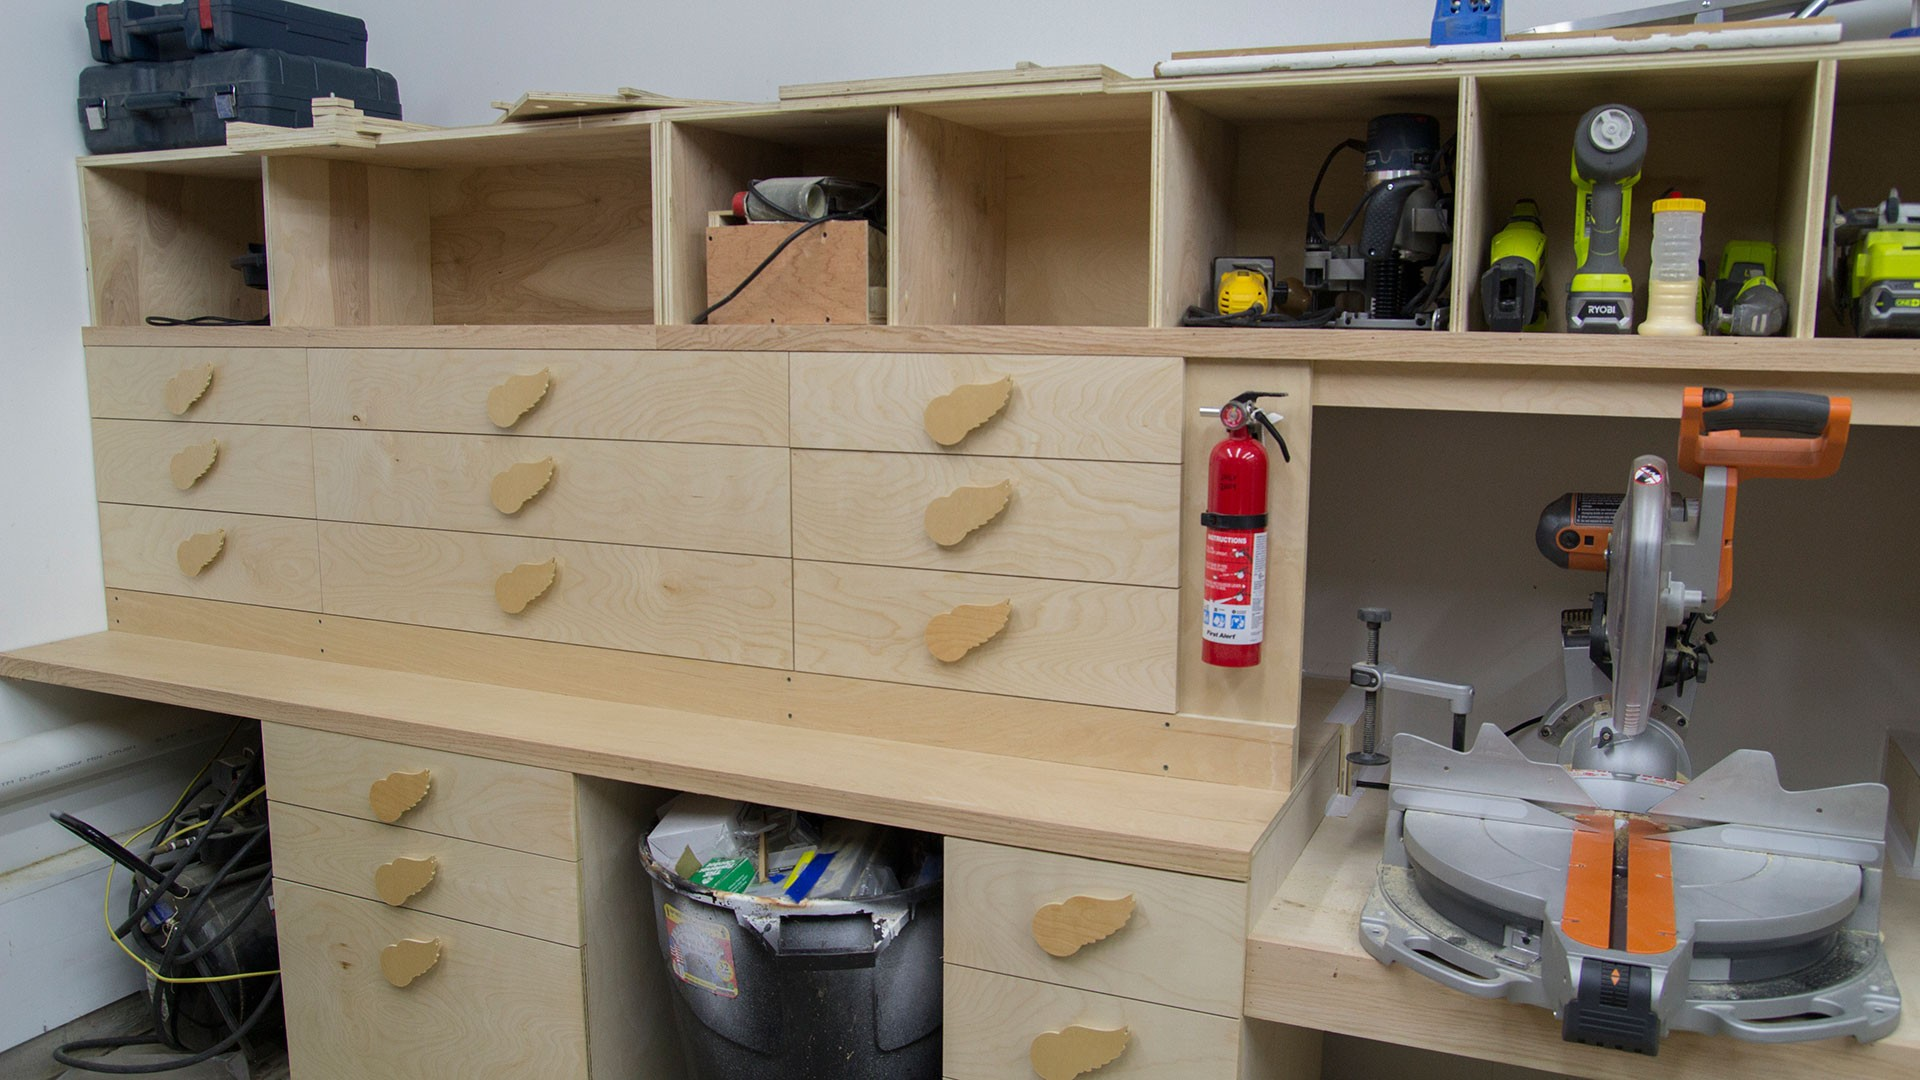 miter saw station storage boxes and drawer fronts (19)